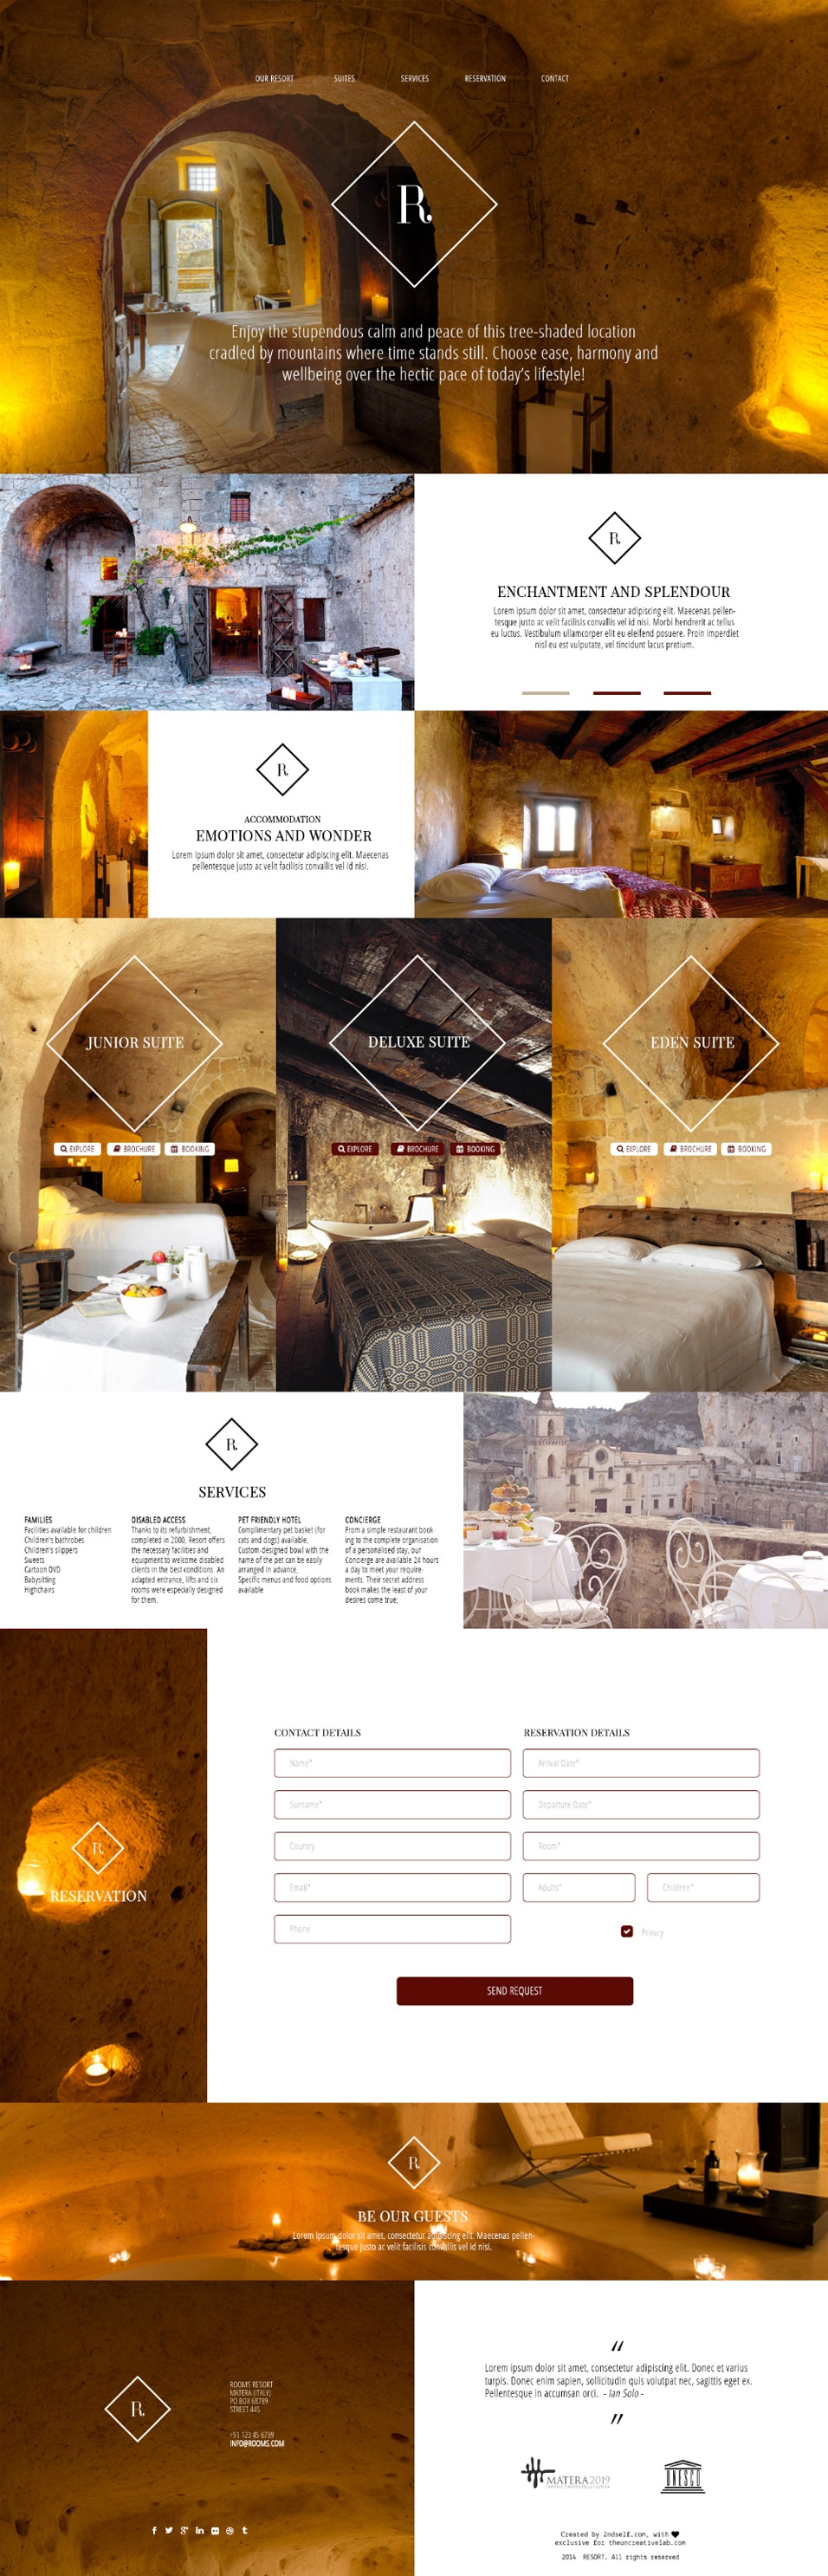 Resort - Free PSD Template